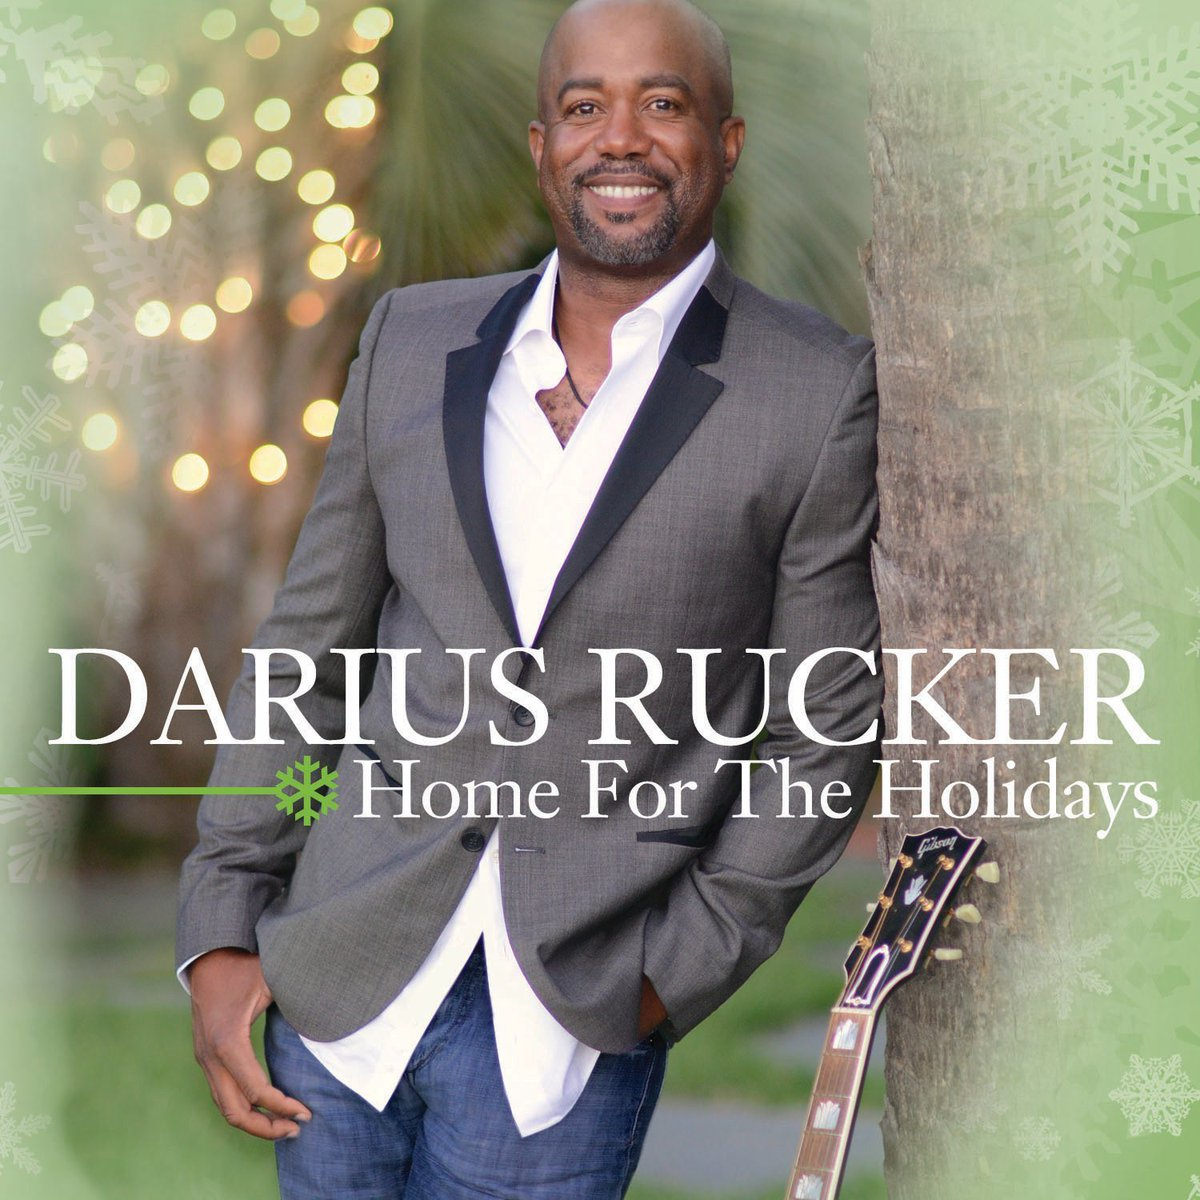 It's always nice to revisit some of the tracks from #HomeForTheHolidays! Hope y'all still enjoy listening: